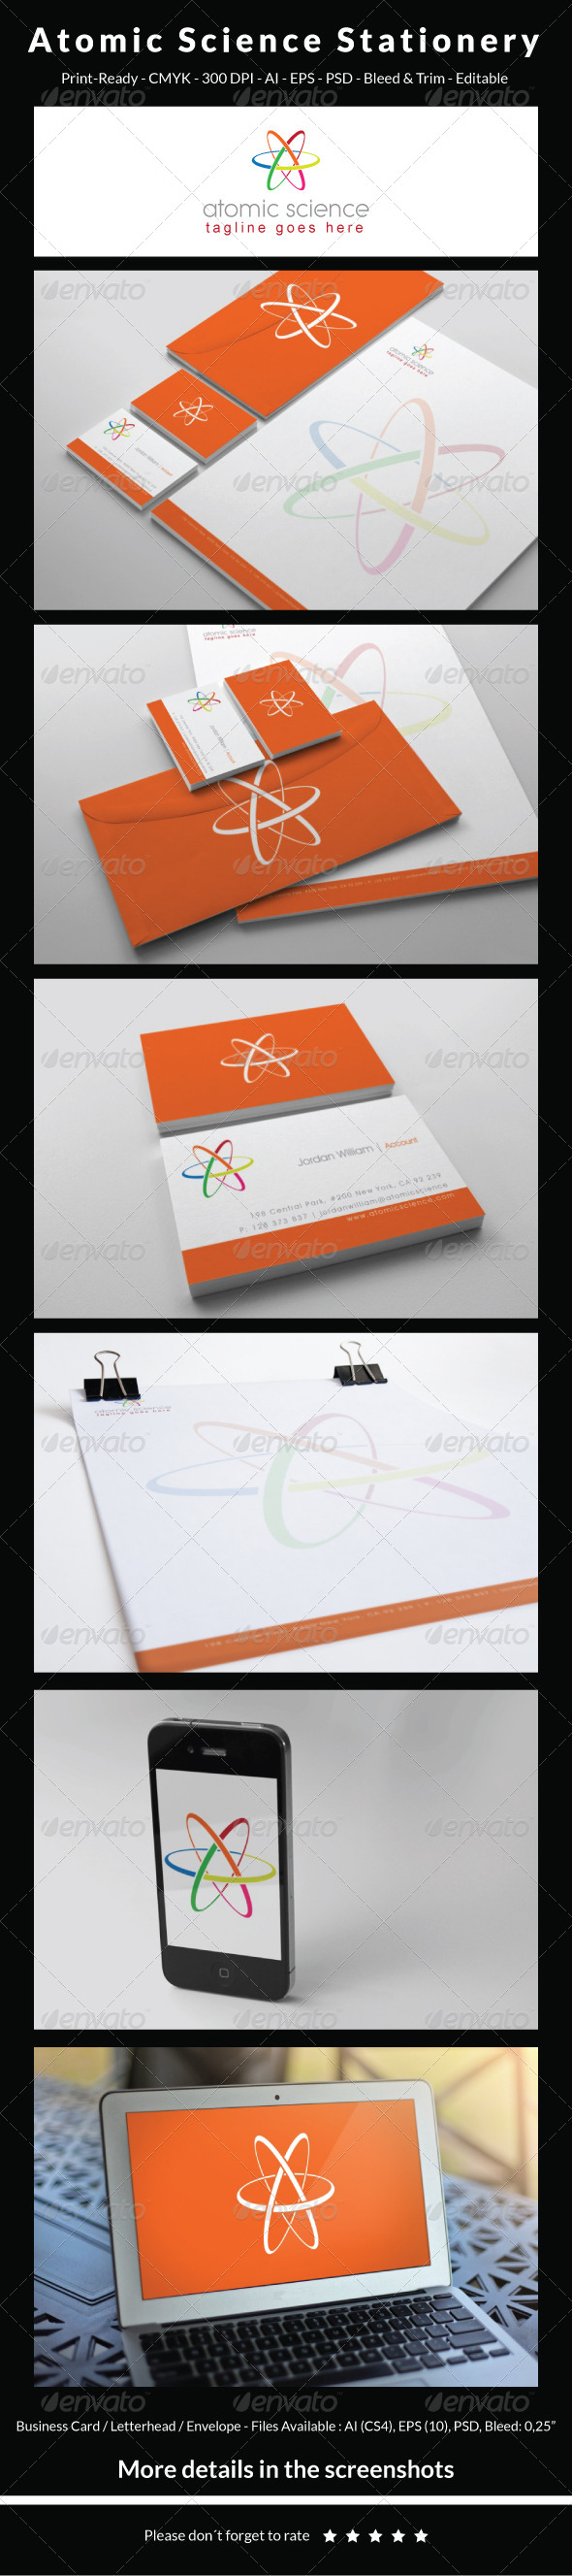 GraphicRiver Atomic Science Stationery 5448714